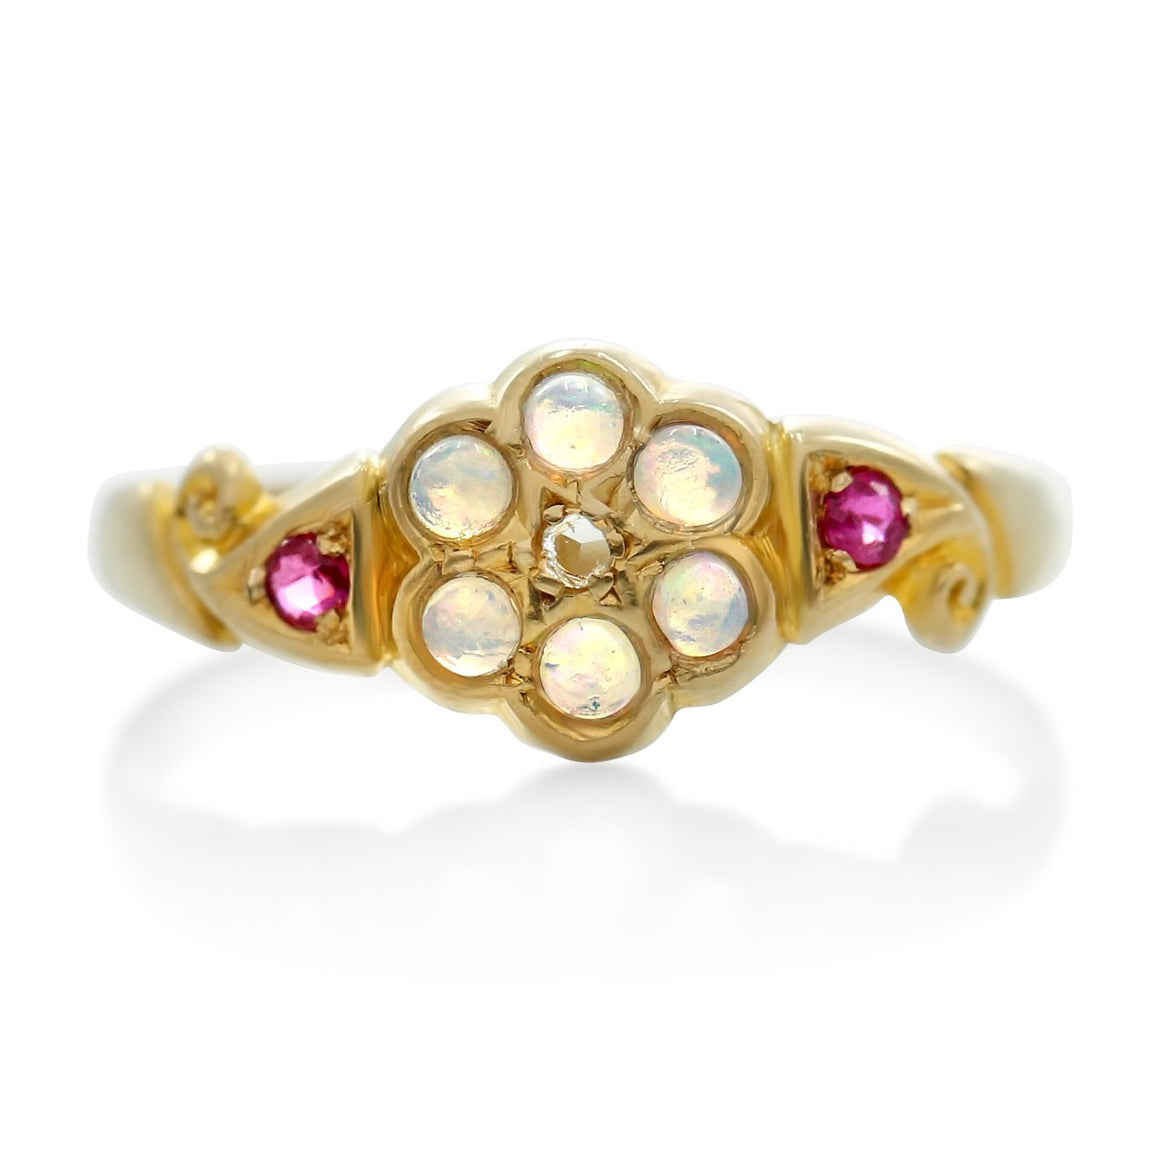 opal and ruby gemstone victorian flower ring with a rose cut diamond and yellow gold band